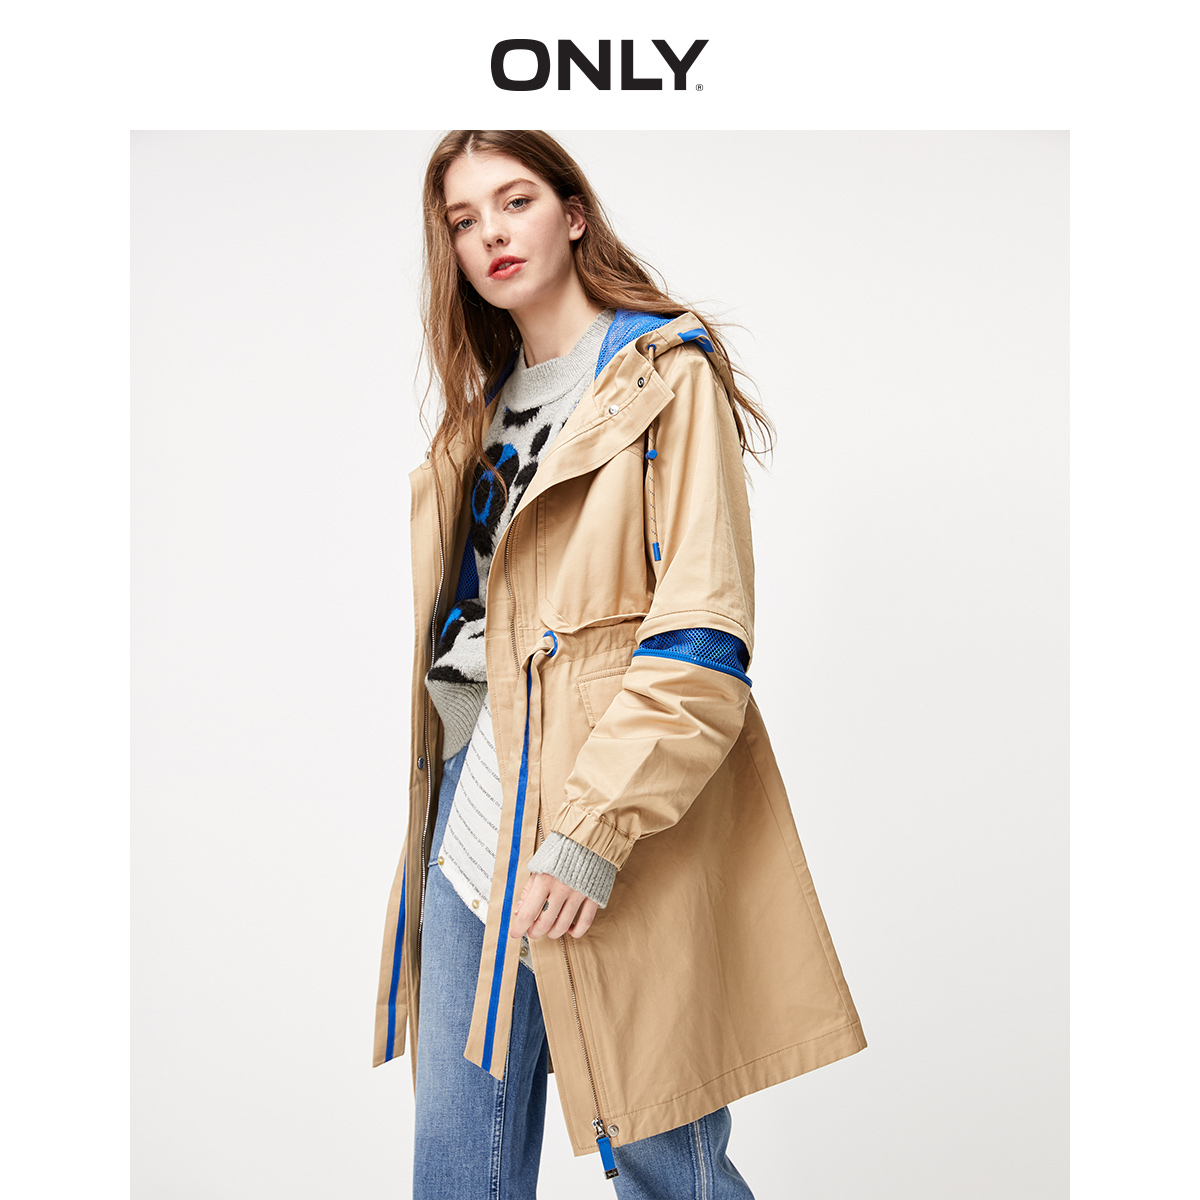 ONLY Women's  Mid-length Cinched Waist Trench Coat   119336525